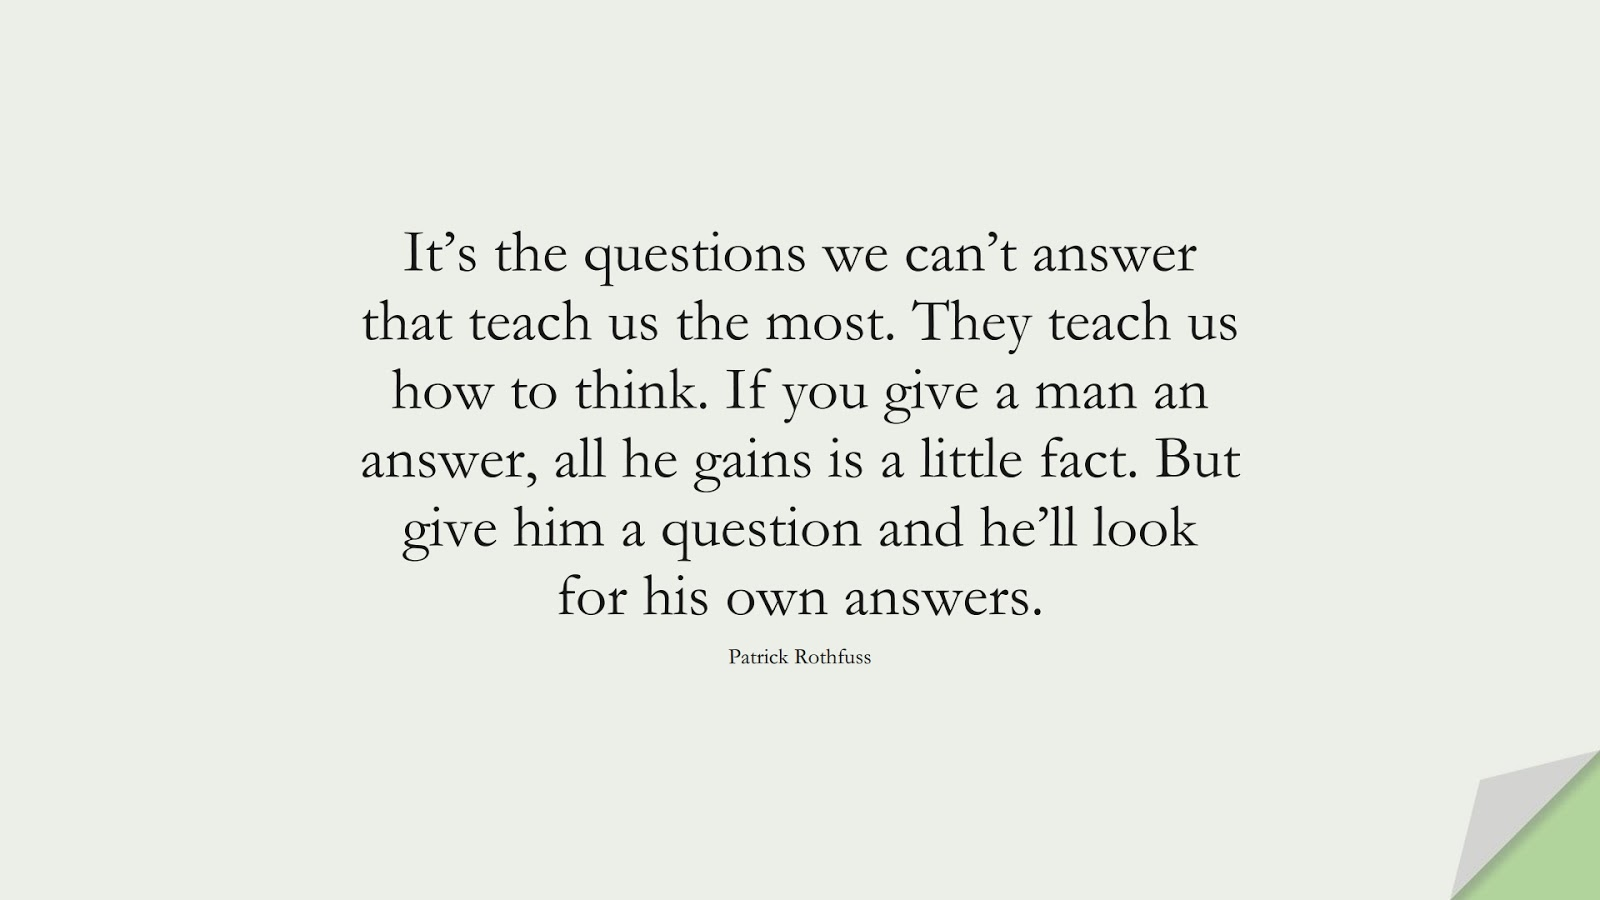 It's the questions we can't answer that teach us the most. They teach us how to think. If you give a man an answer, all he gains is a little fact. But give him a question and he'll look for his own answers. (Patrick Rothfuss);  #FearQuotes